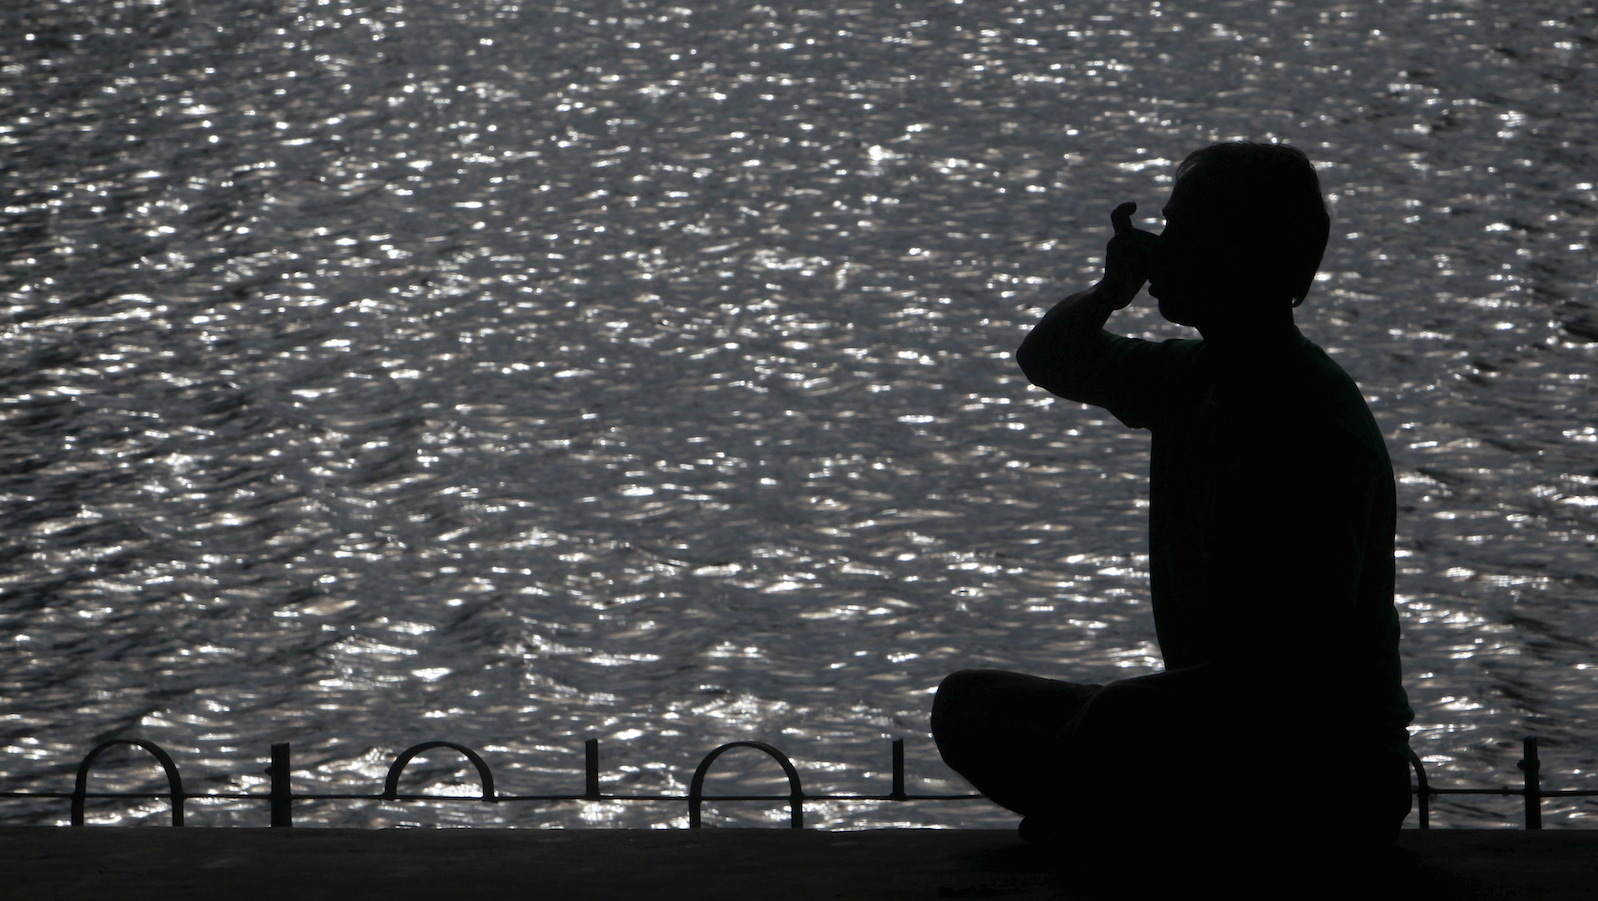 A man practices yoga on the promenade next to a lake in Agartala, India early June 16, 2015.